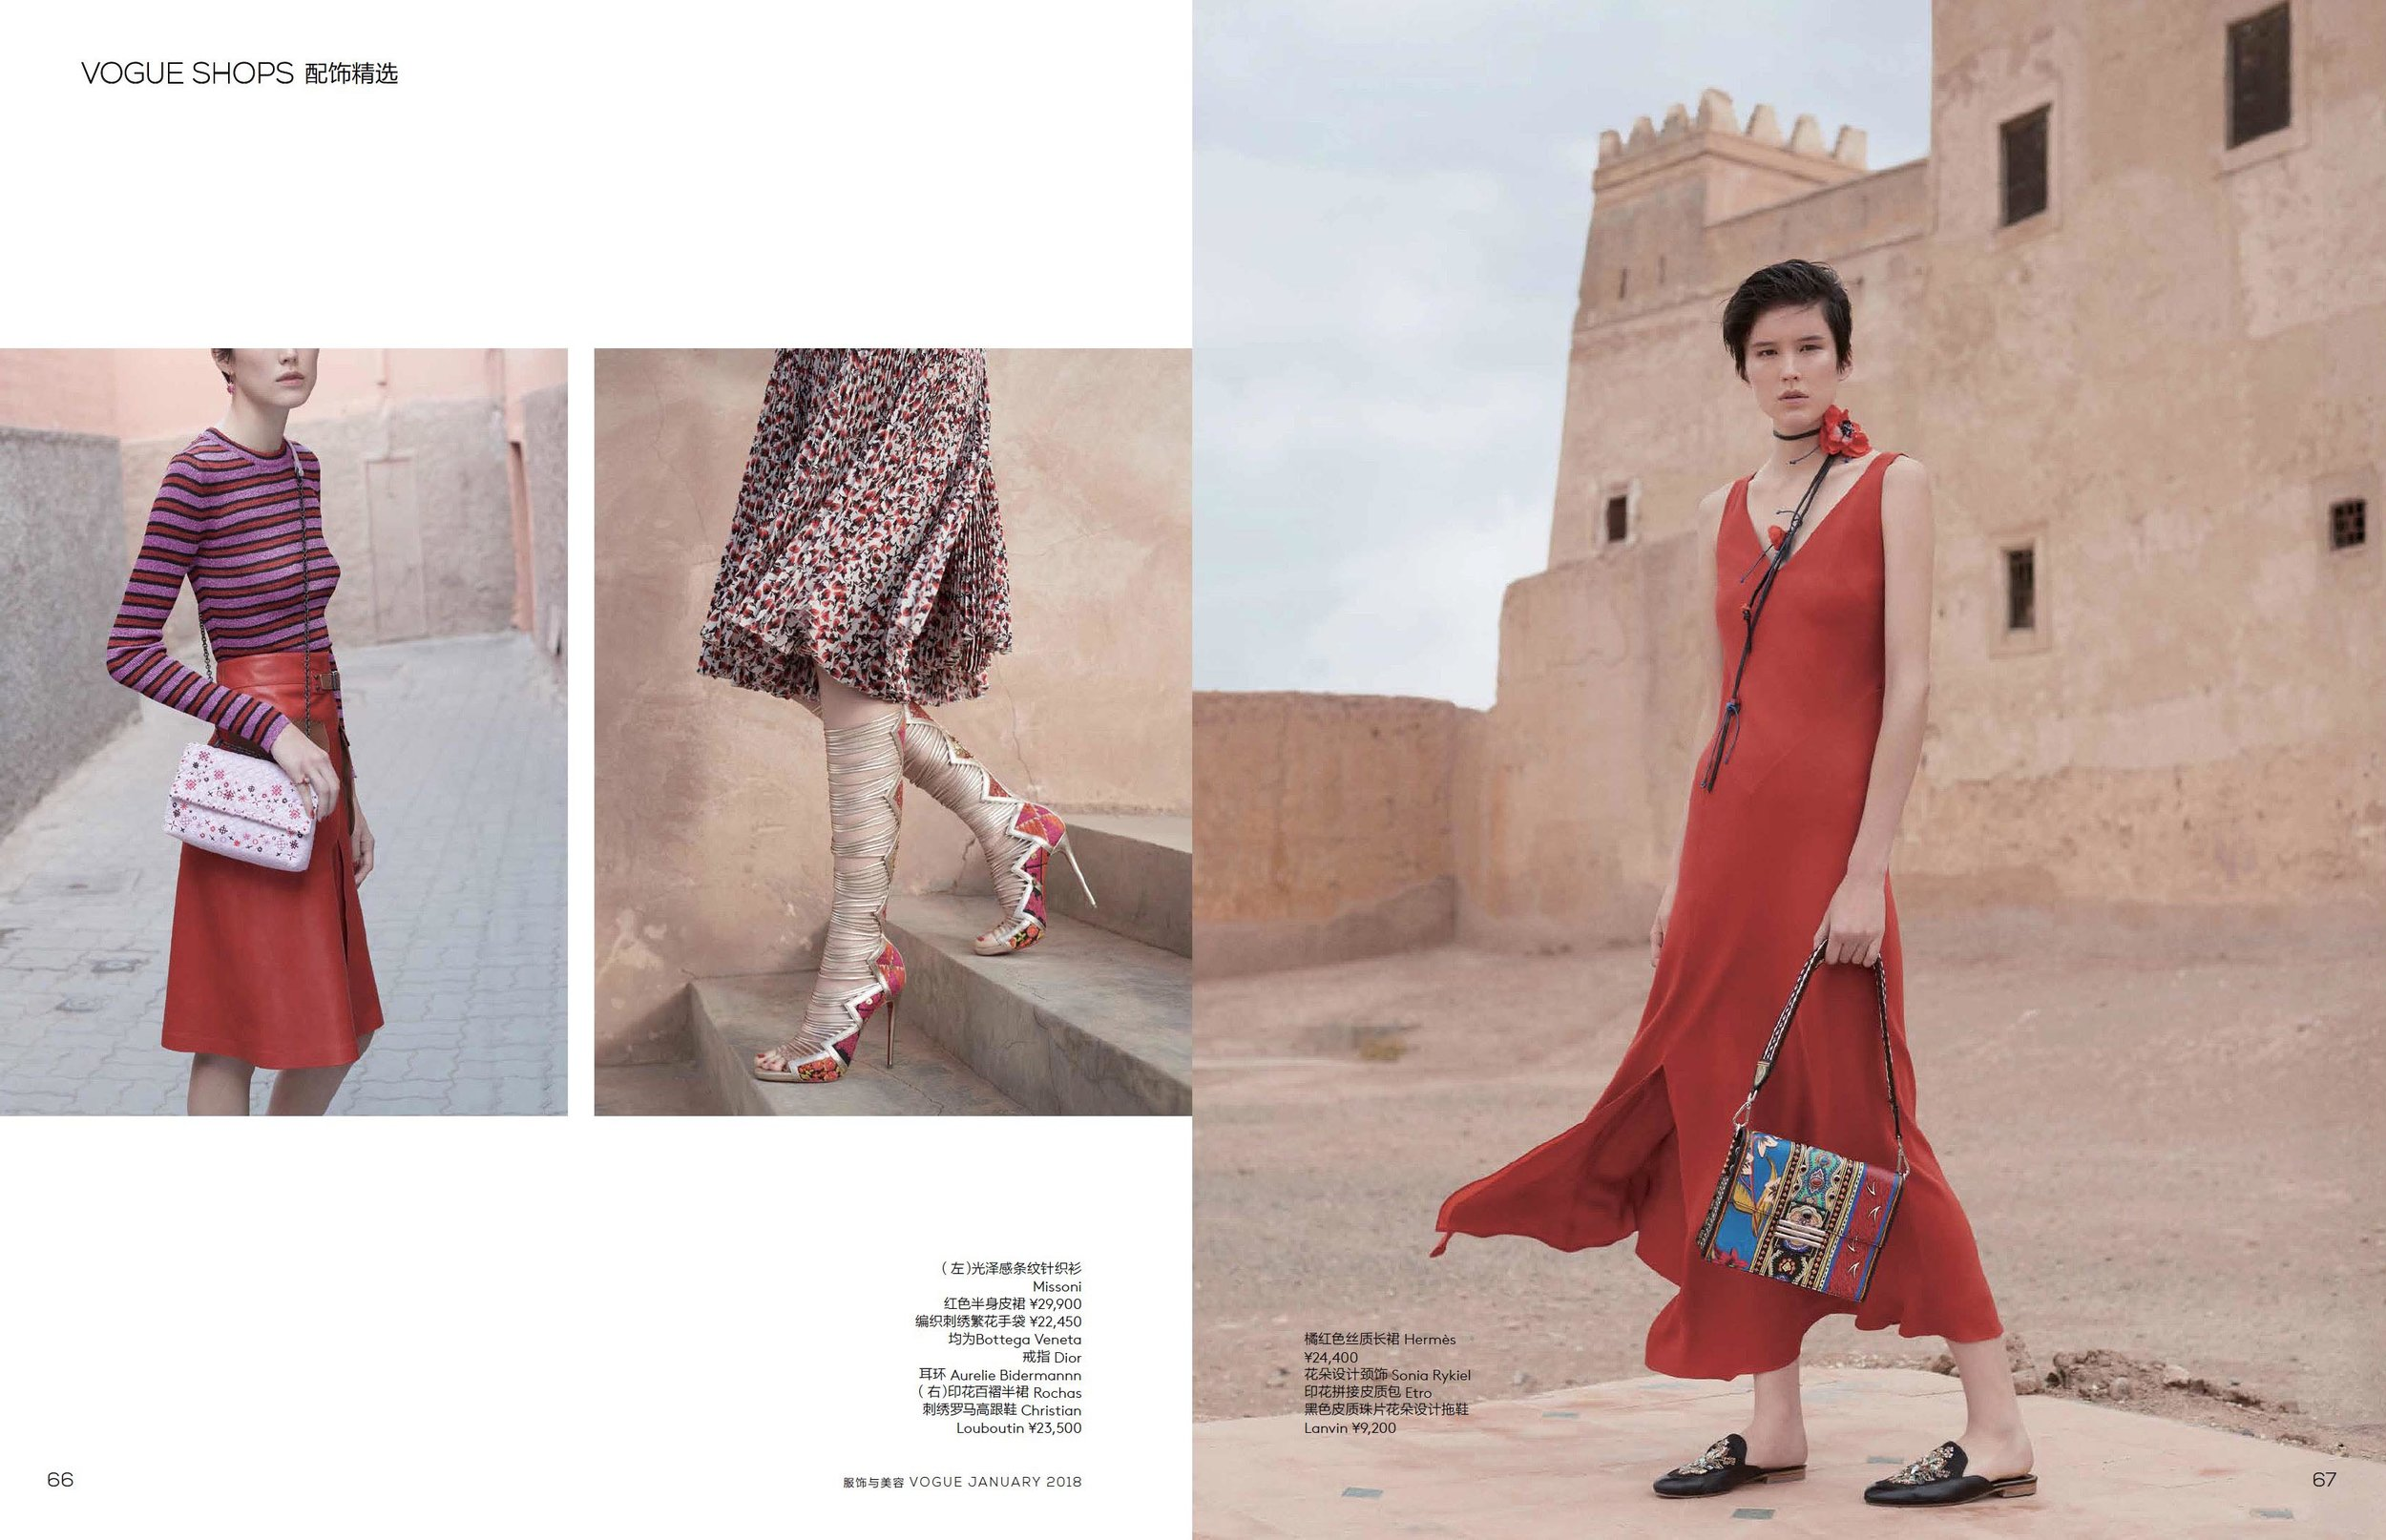 SPSS0711 Vogue China Morocco Shoot_page06.jpg